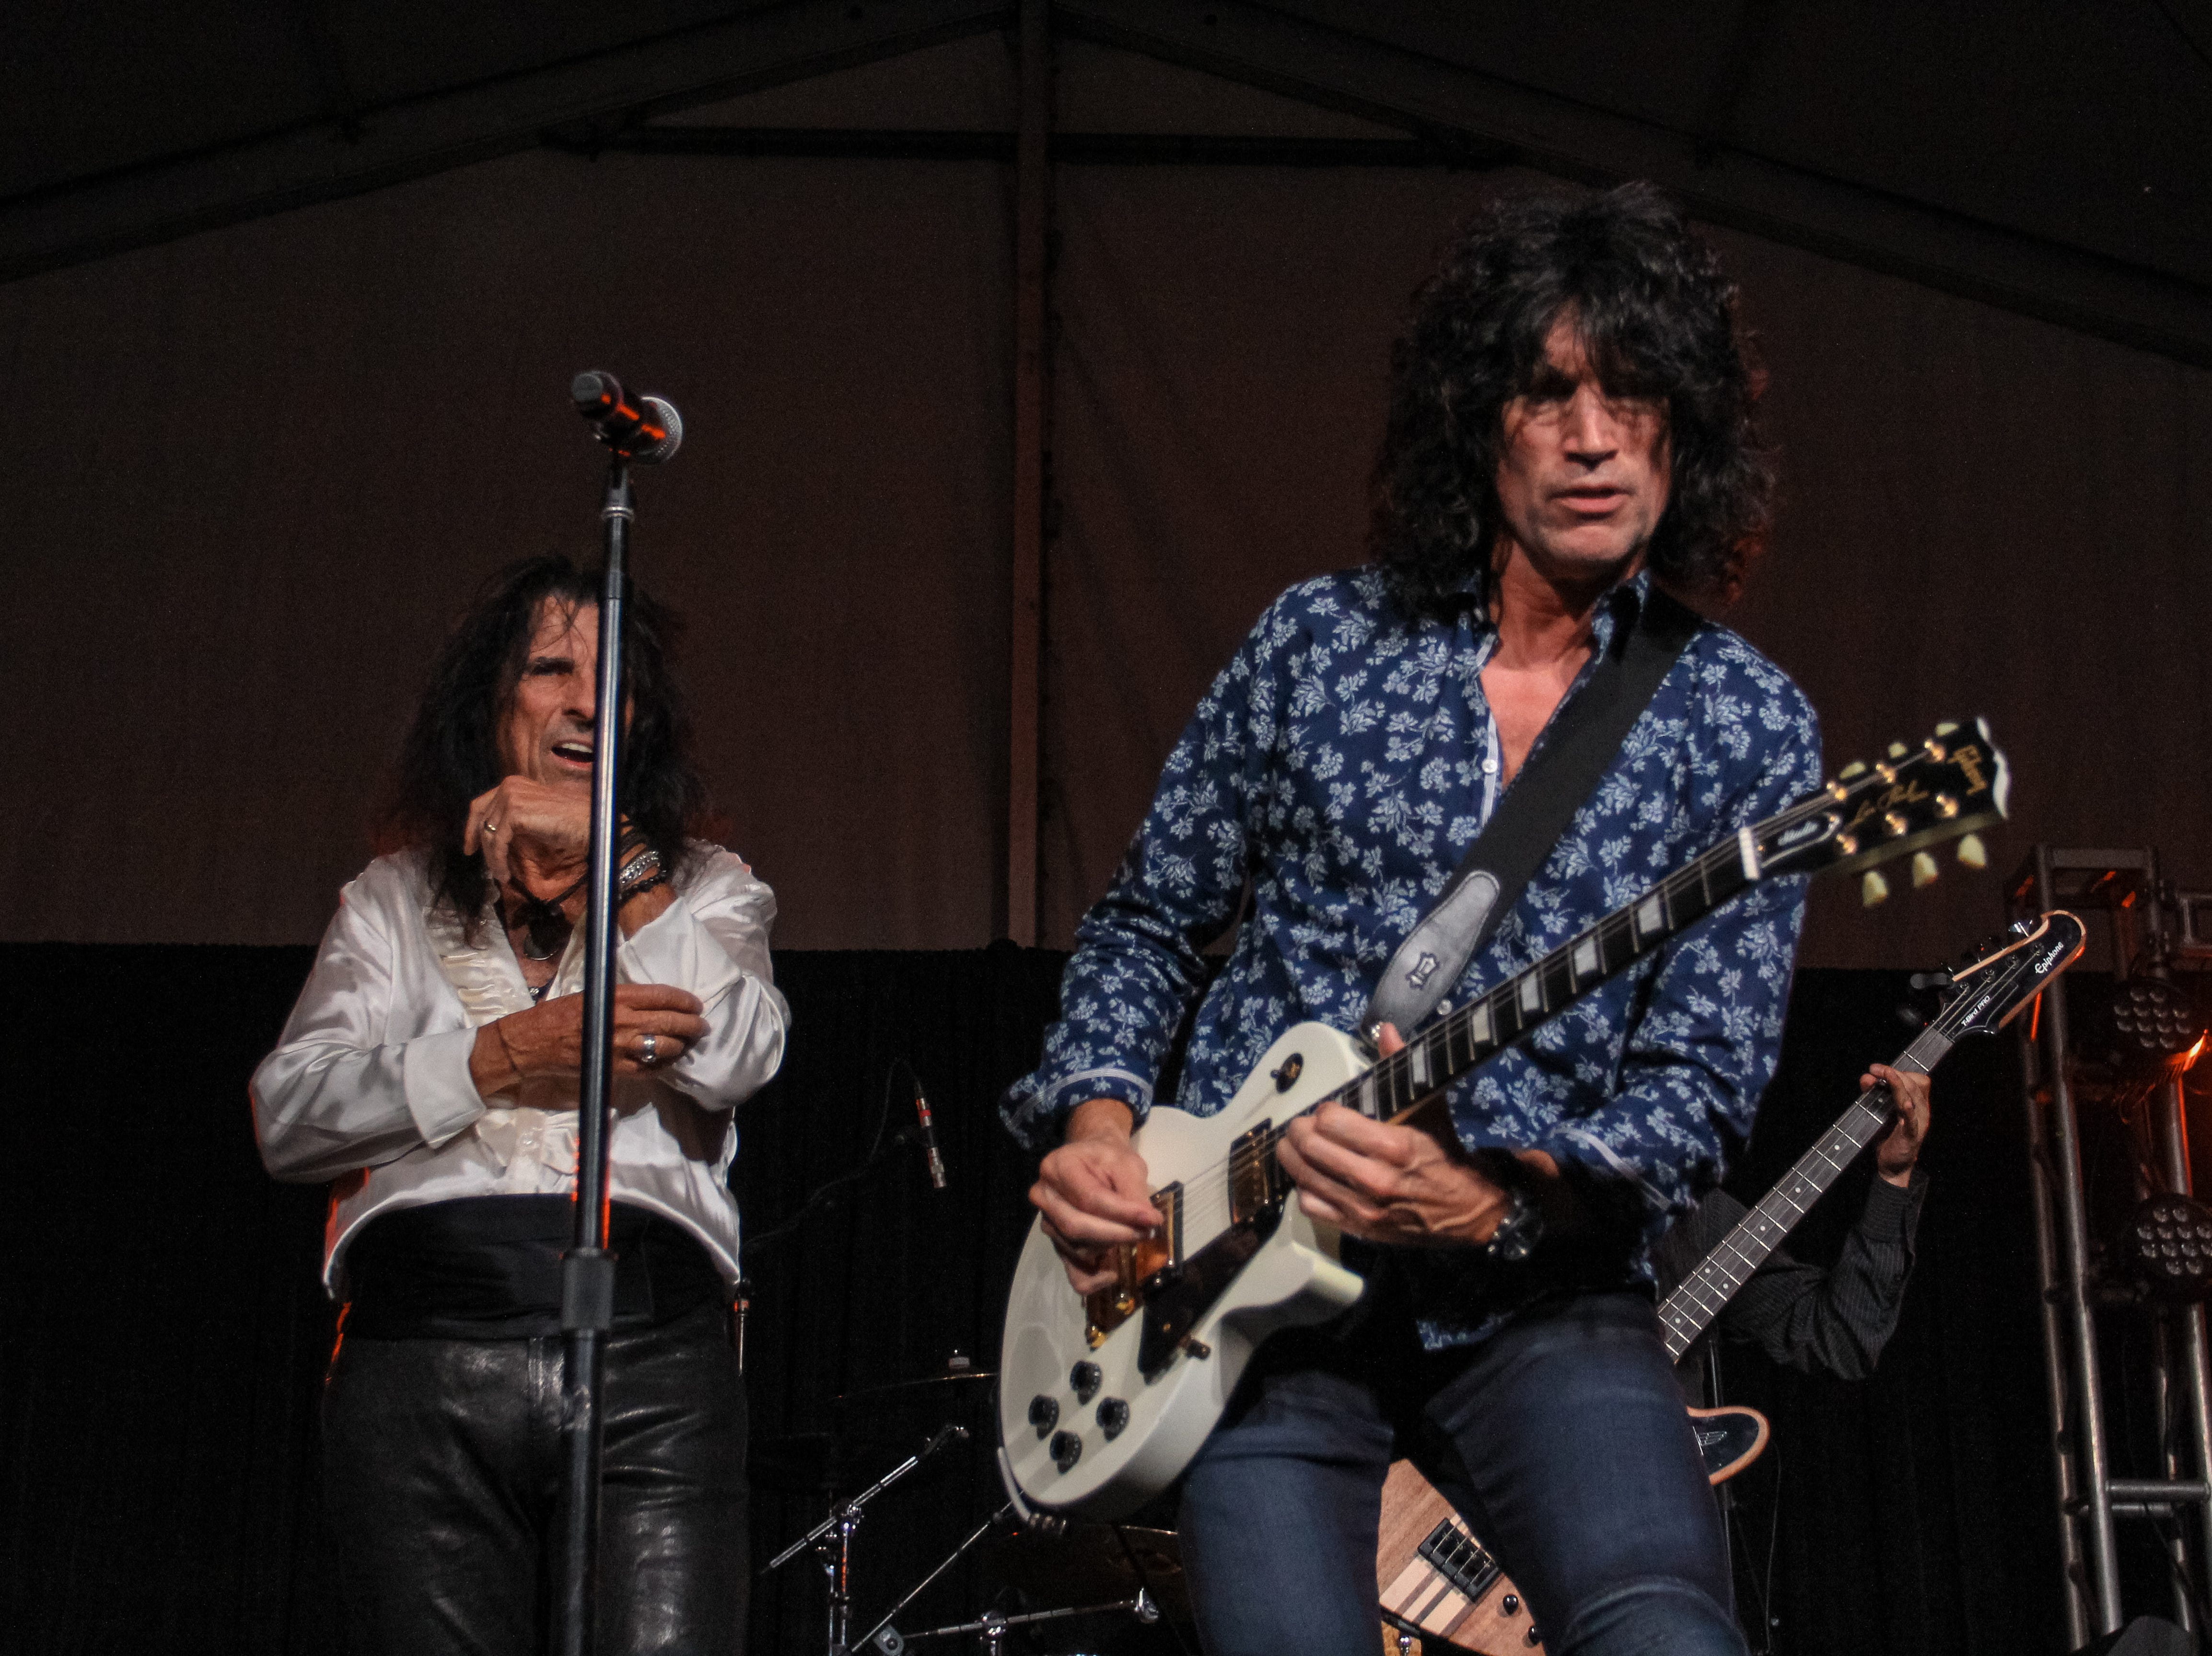 Alice Cooper and Tommy Thayer of Kiss perform at Alice Cooper's Rock & Roll Fundraising Bash at the Las Sendas Golf Club in Mesa on April 27, 2019.